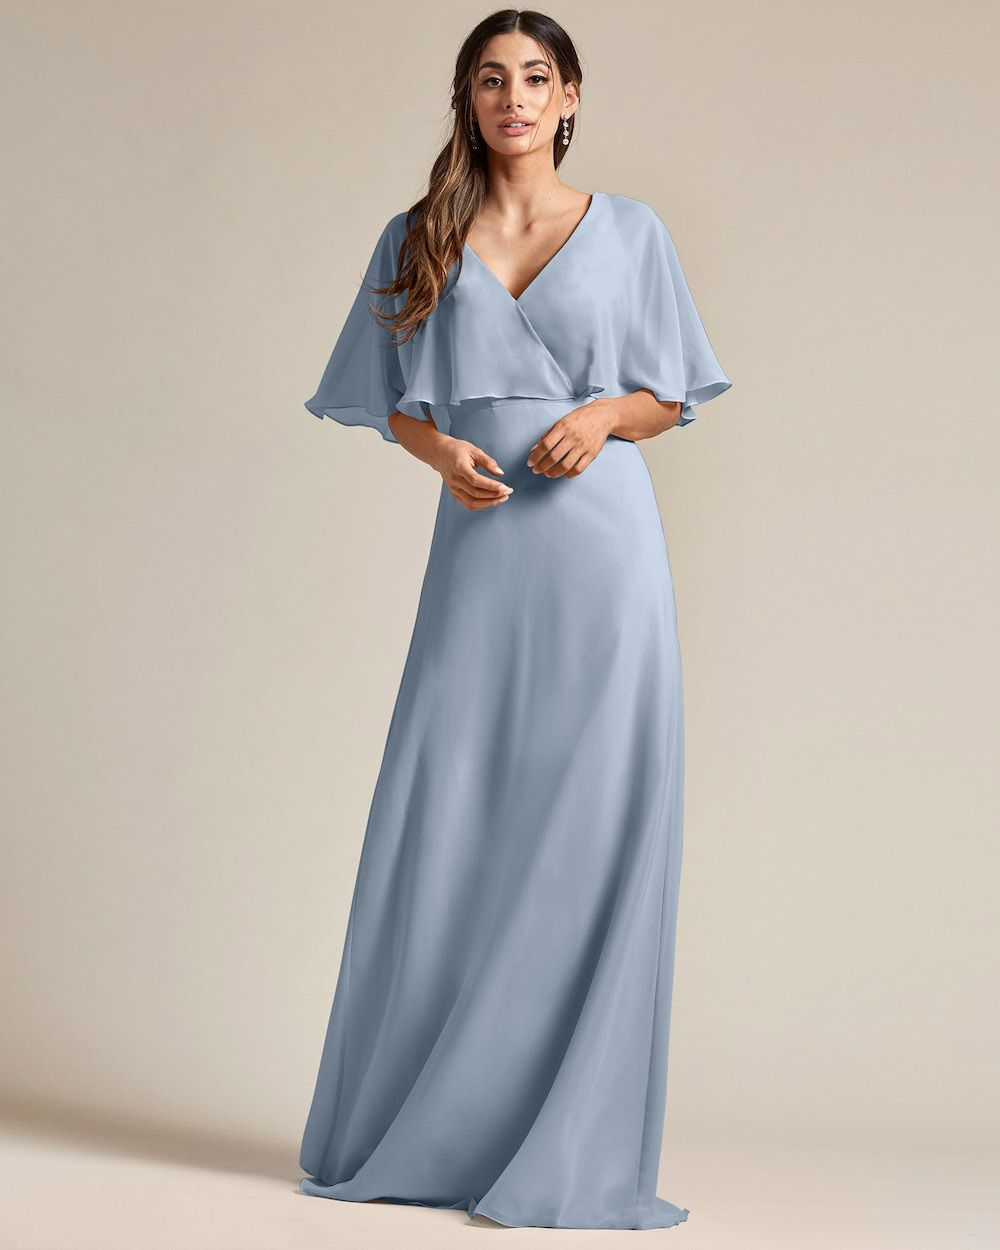 Flounder Design With Large Cut Out Back Long Skirt Bridesmaid Gown - Front